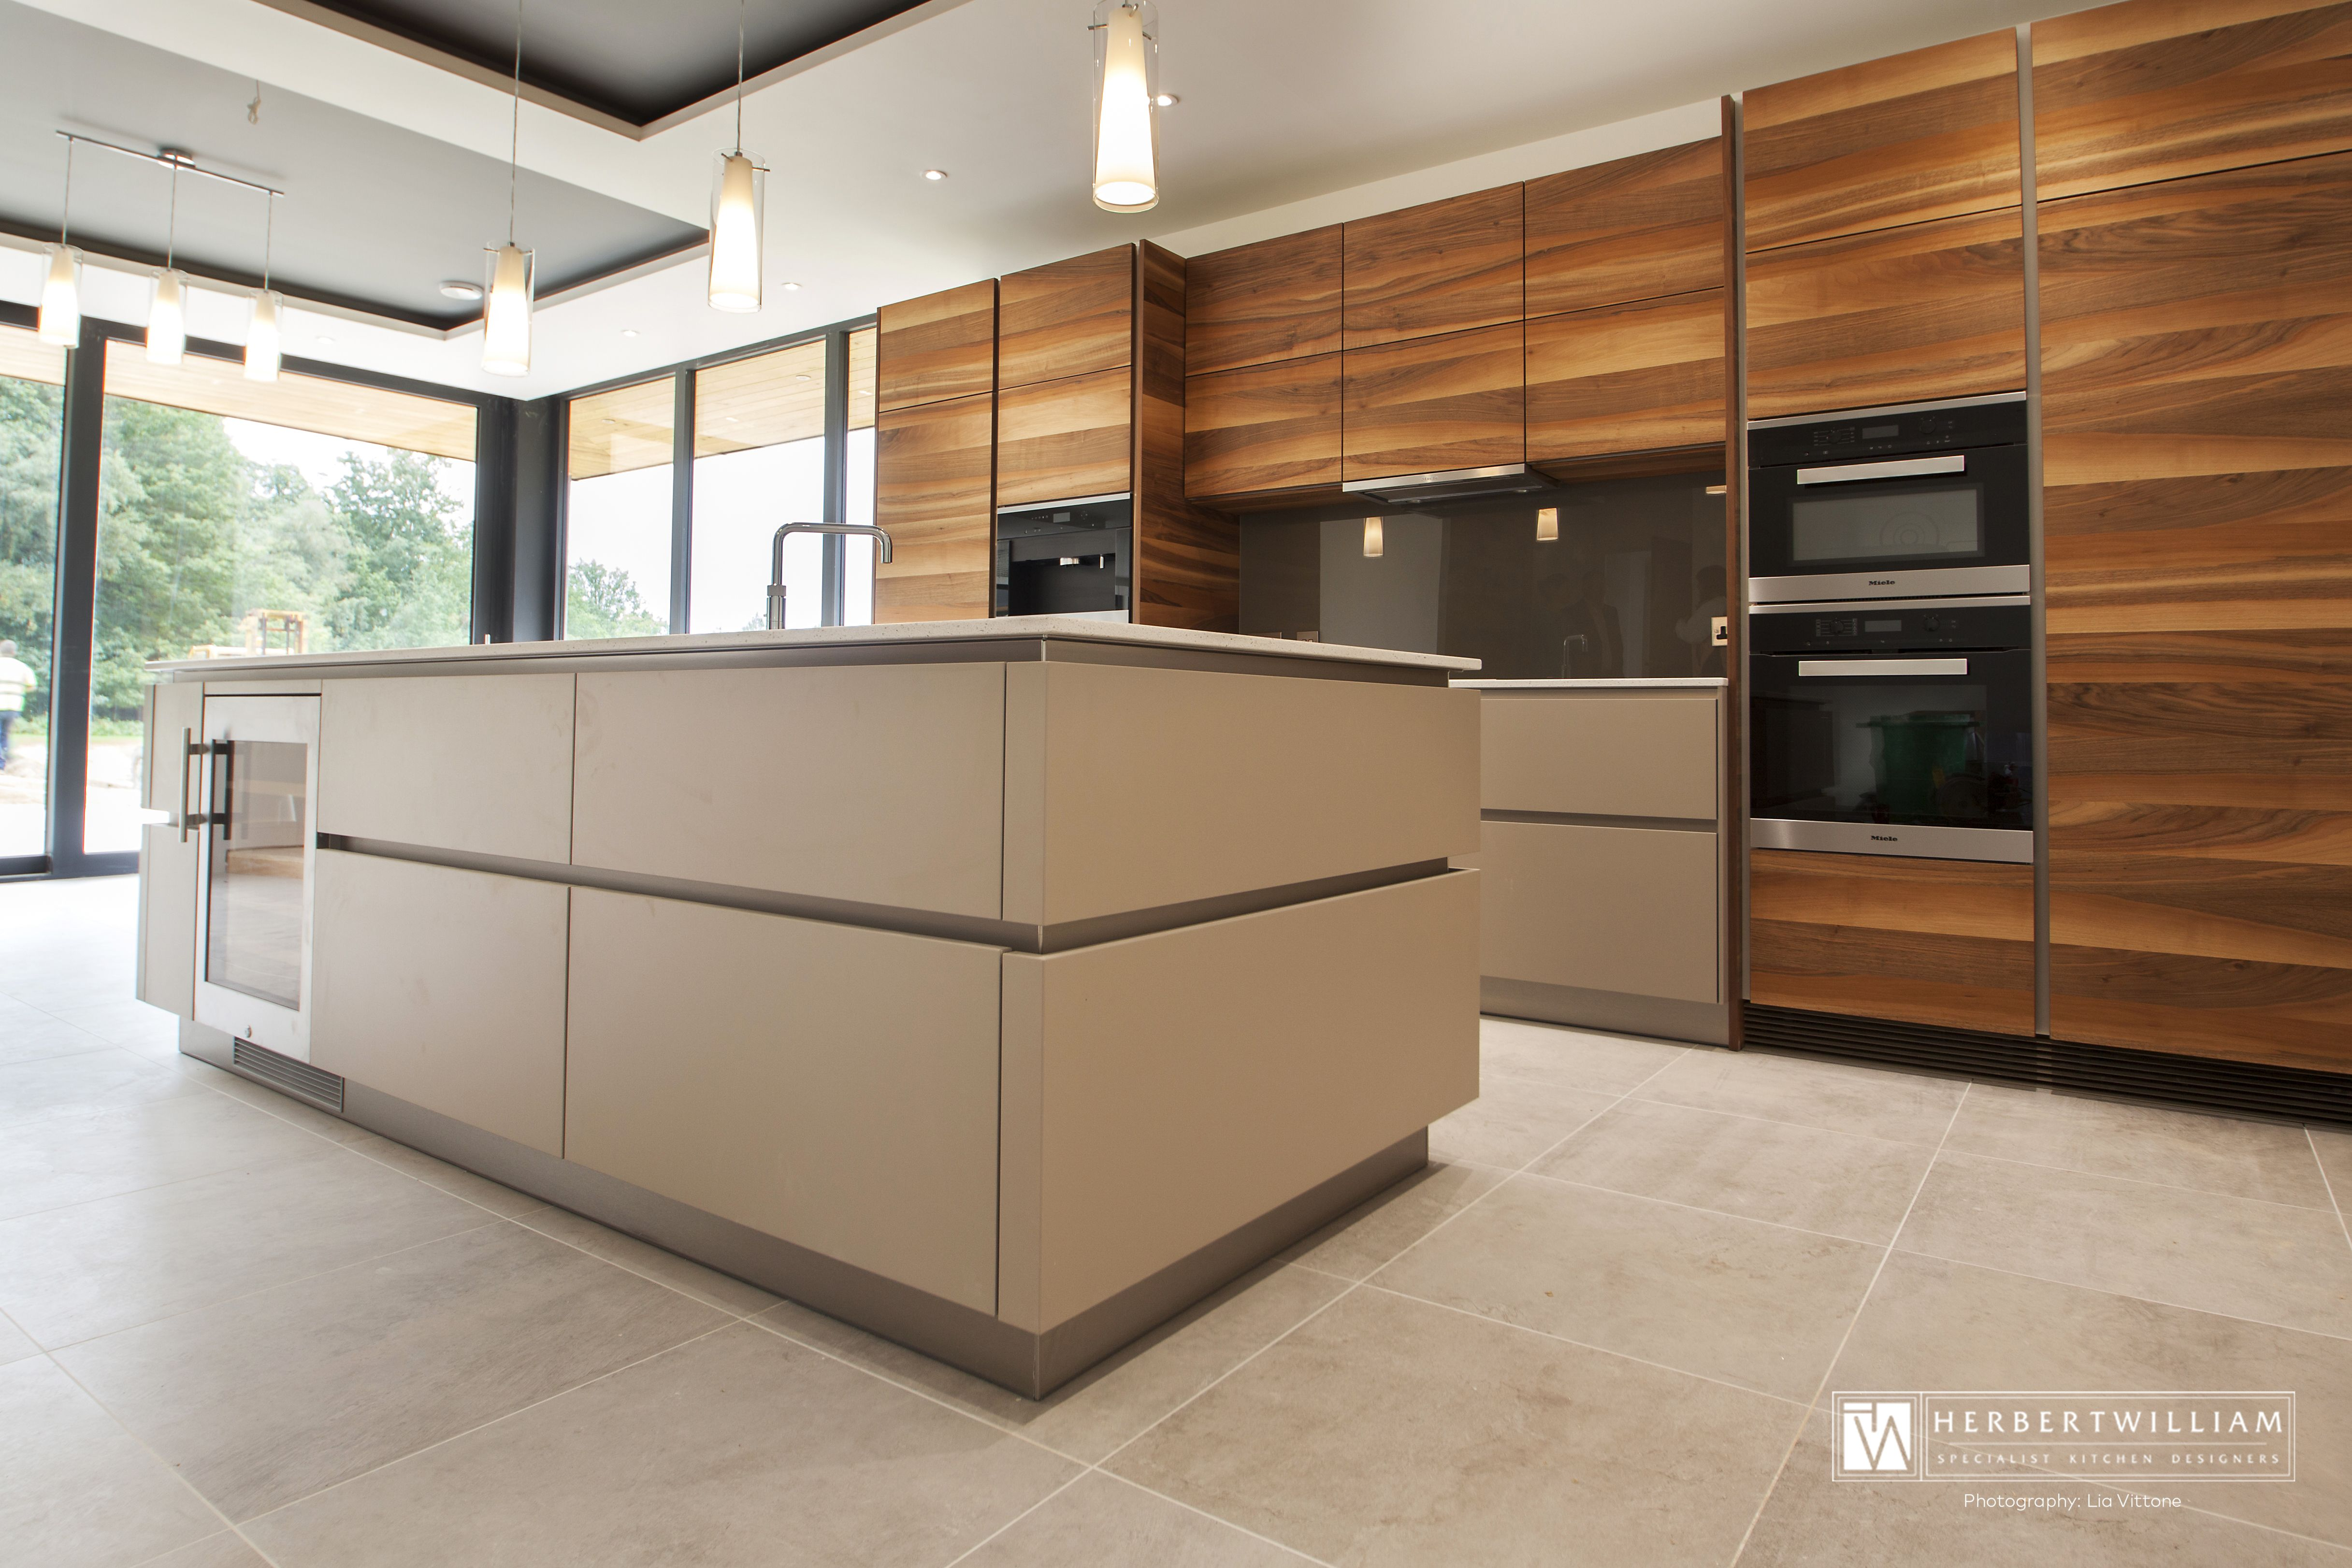 High End Kitchen Design Images Luxury Intuo Kitchen Design By Herbert William Kitchen Design Ekkor